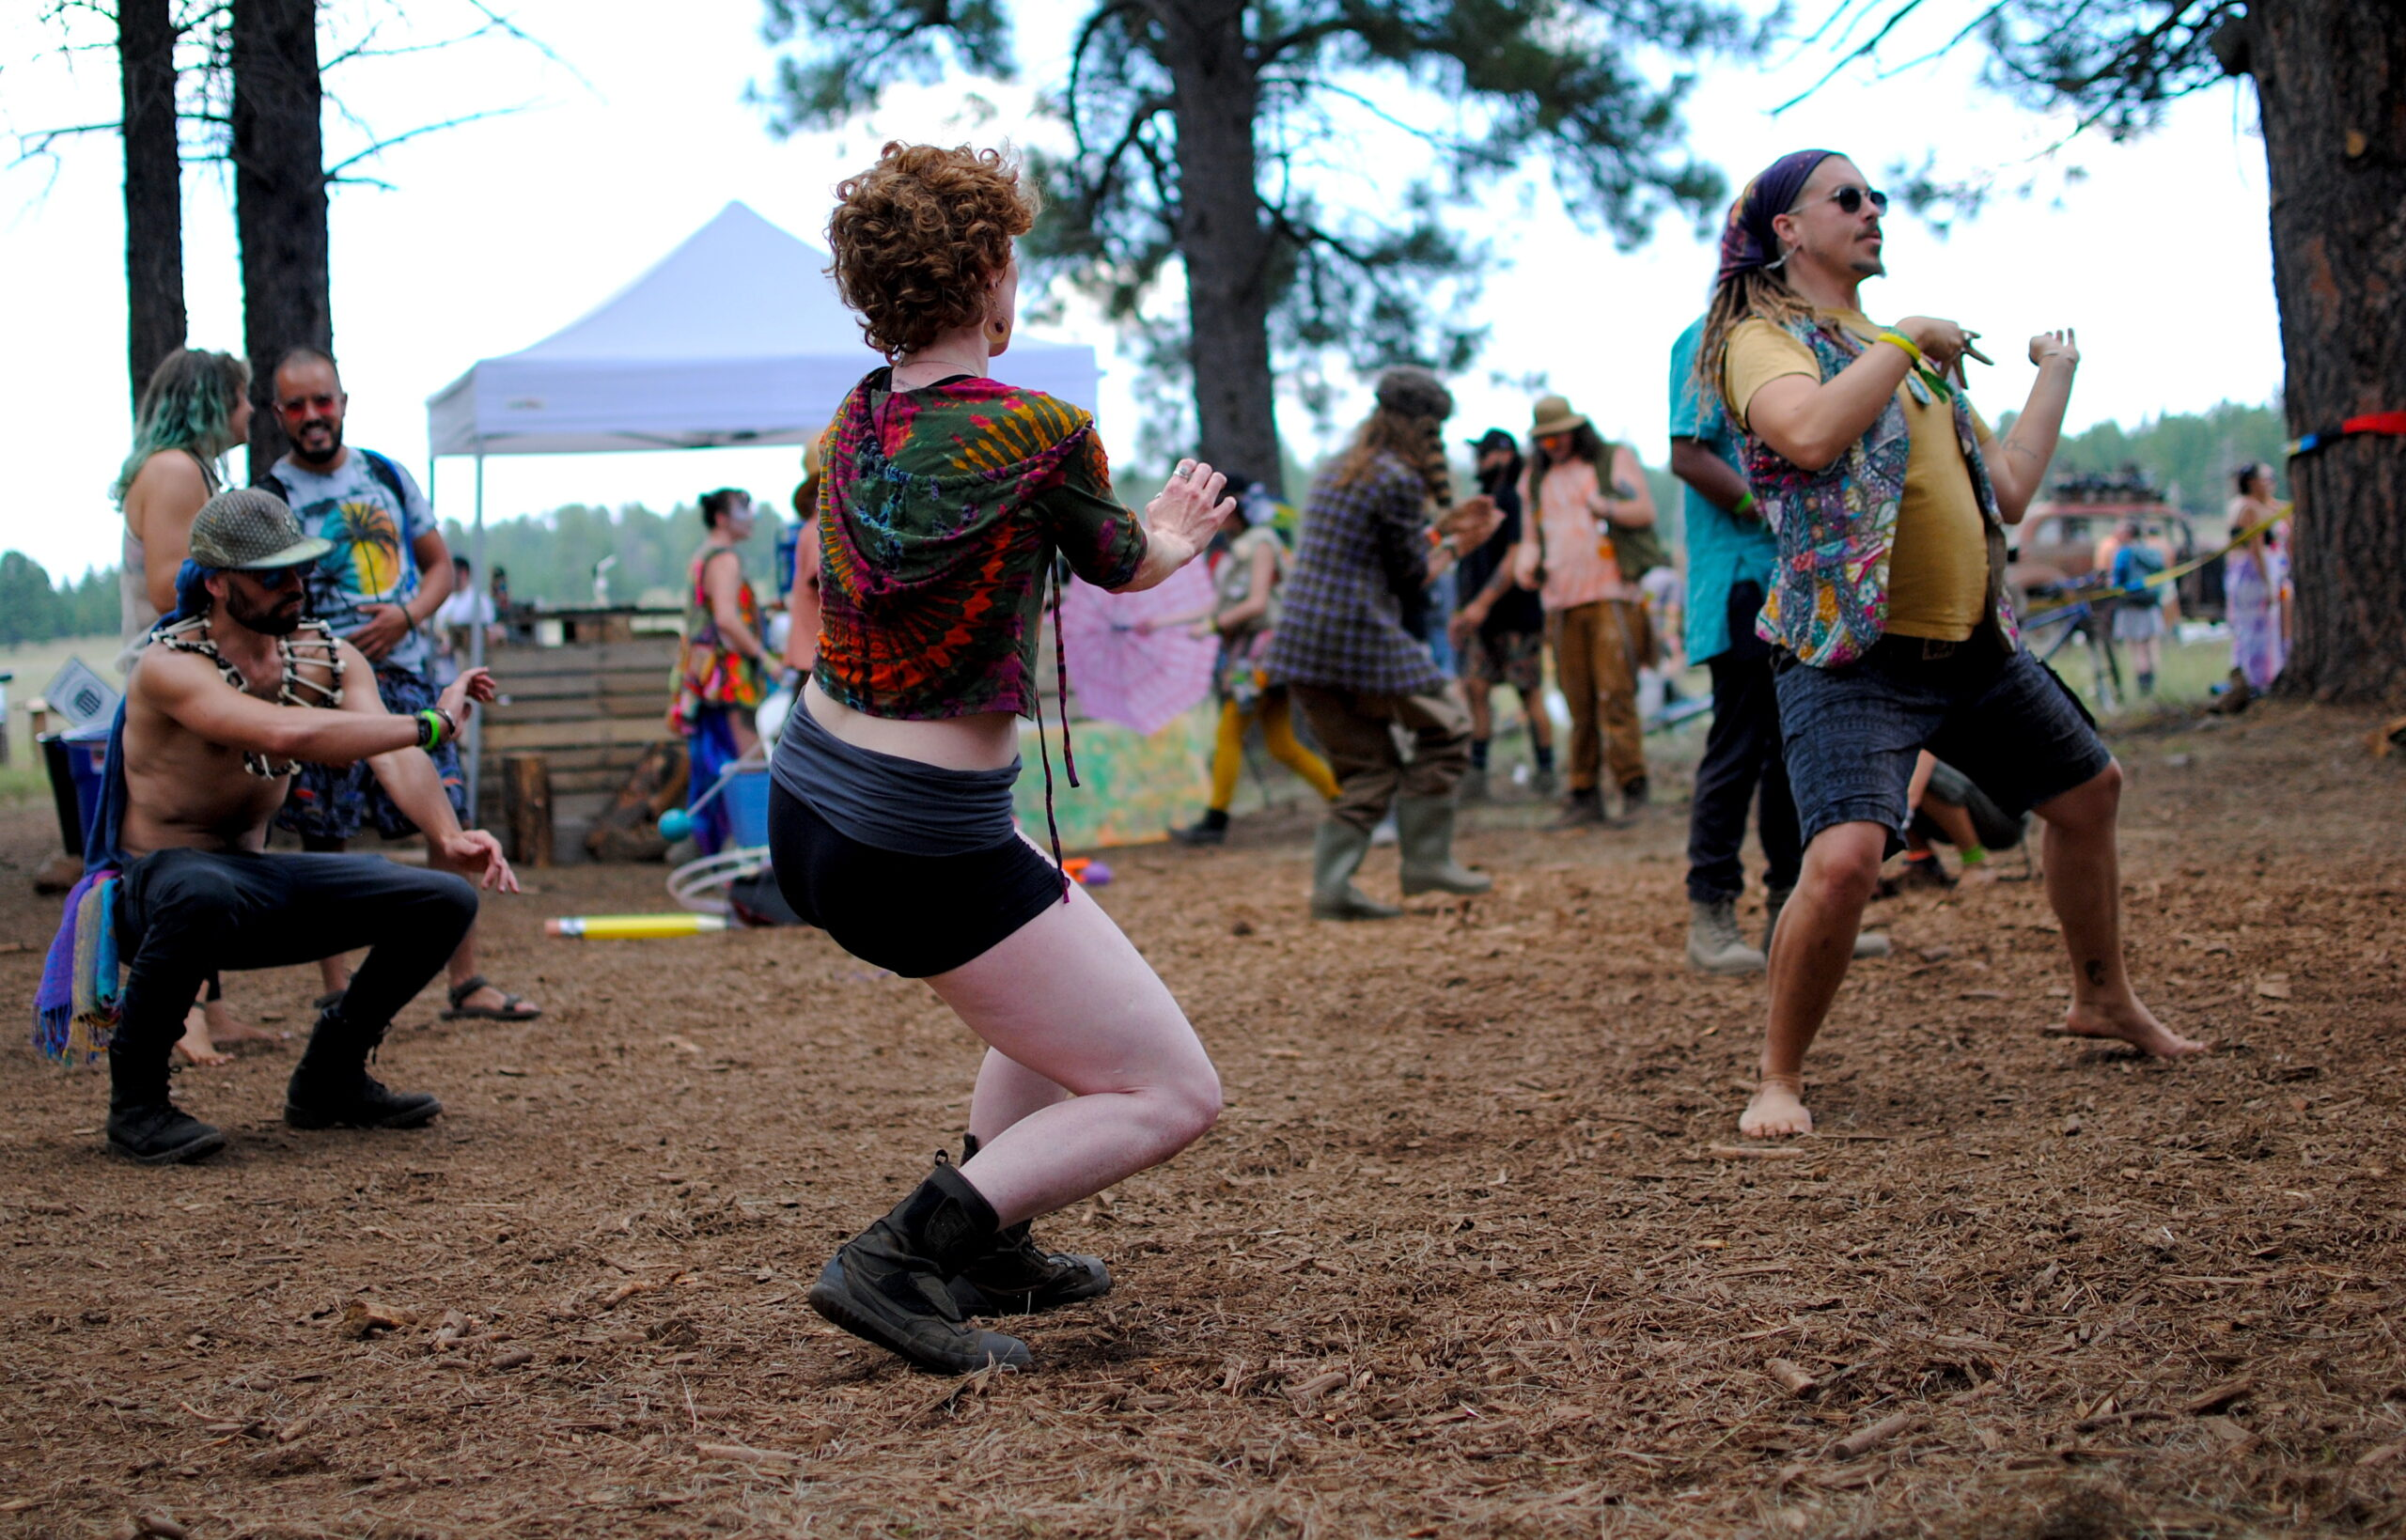 Festival-goers groove and flow among the Ponderosa Pines. Photo by: Marissa Novel.